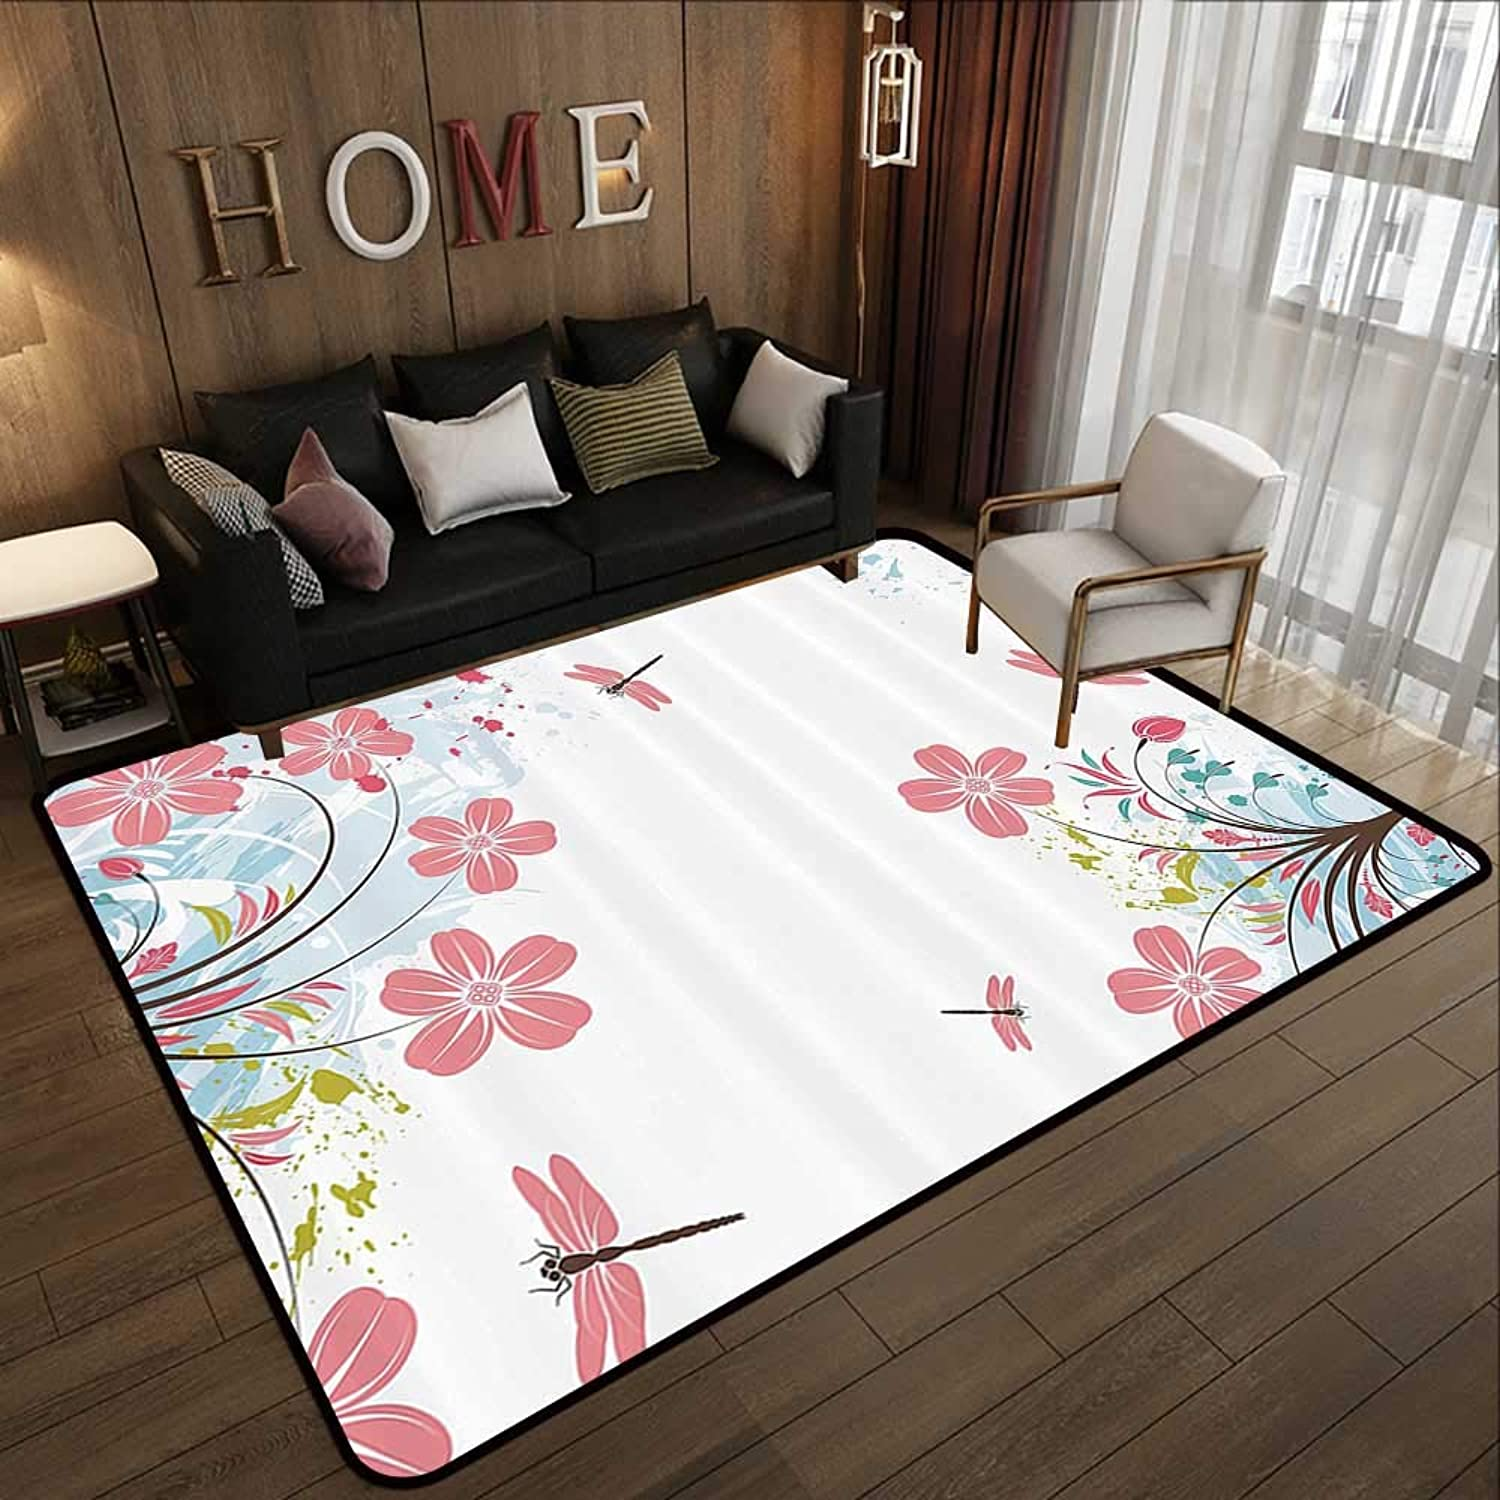 Carpet mat,Country Decor Collection,Dragonflies and Flower Field Spring Season Inspirational Natural Ecological Life Theme,Pink blue 47 x 59  Floor Mat Entrance Doormat